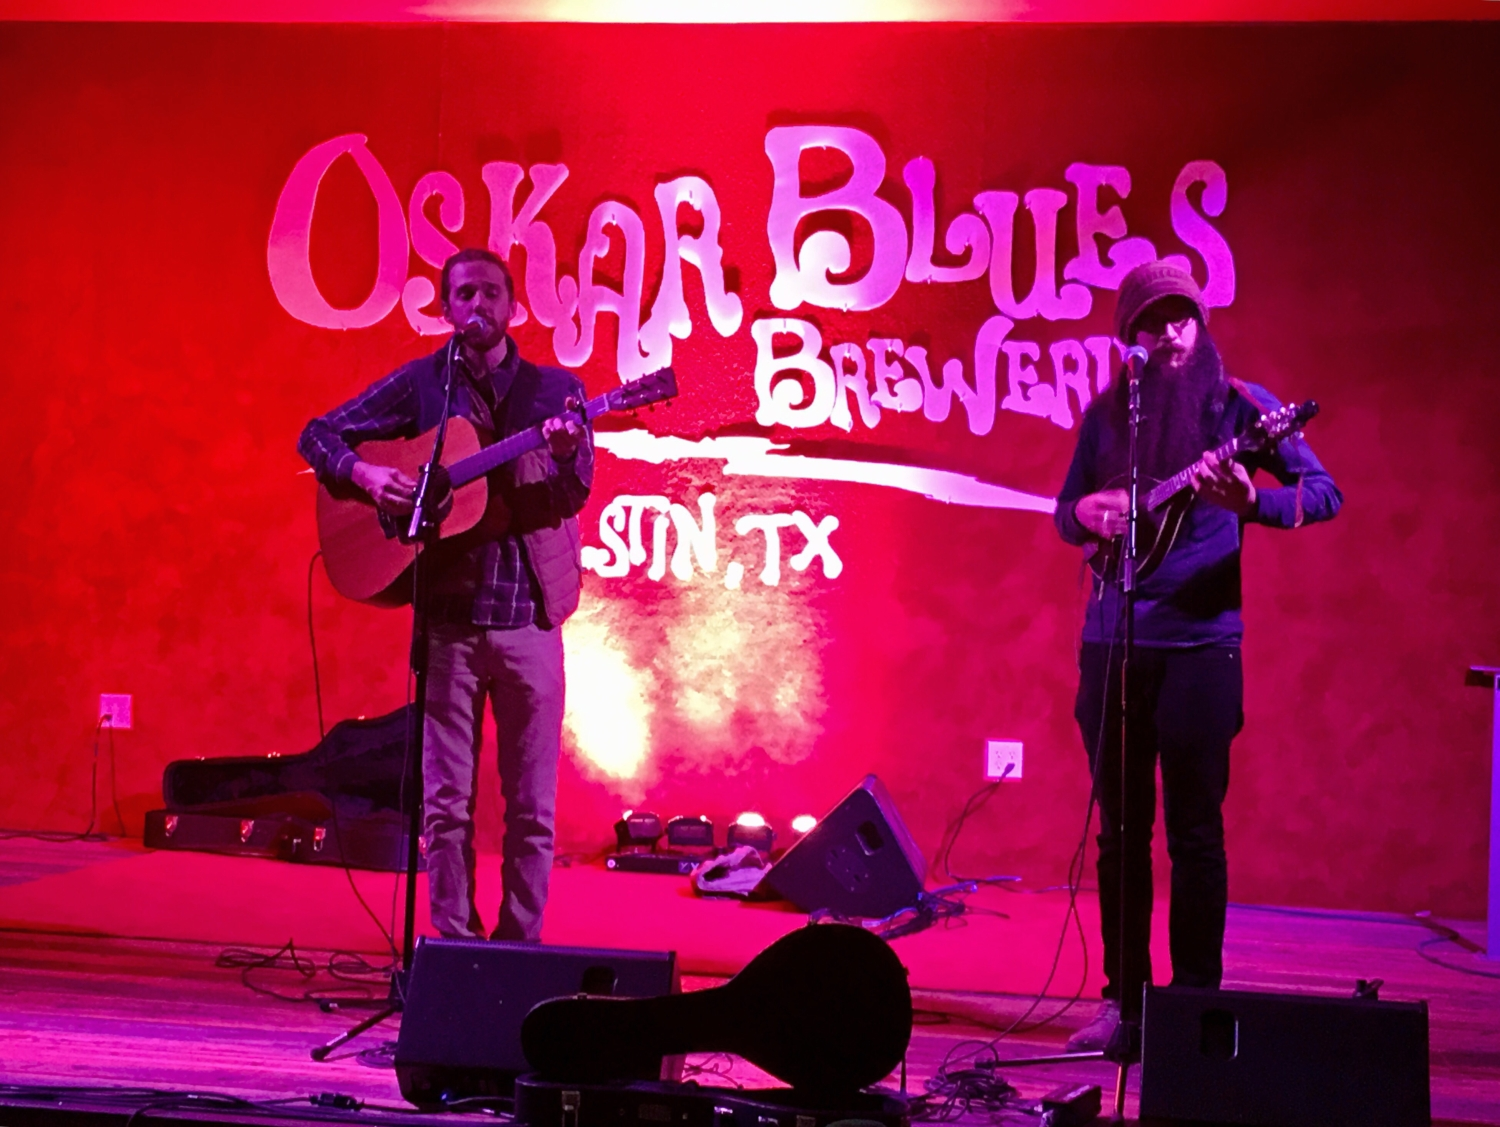 Band performs live at Oskar Blues Brewery. Check out the various locations in this blog post along the 3M Half Marathon course and get to know Austin.